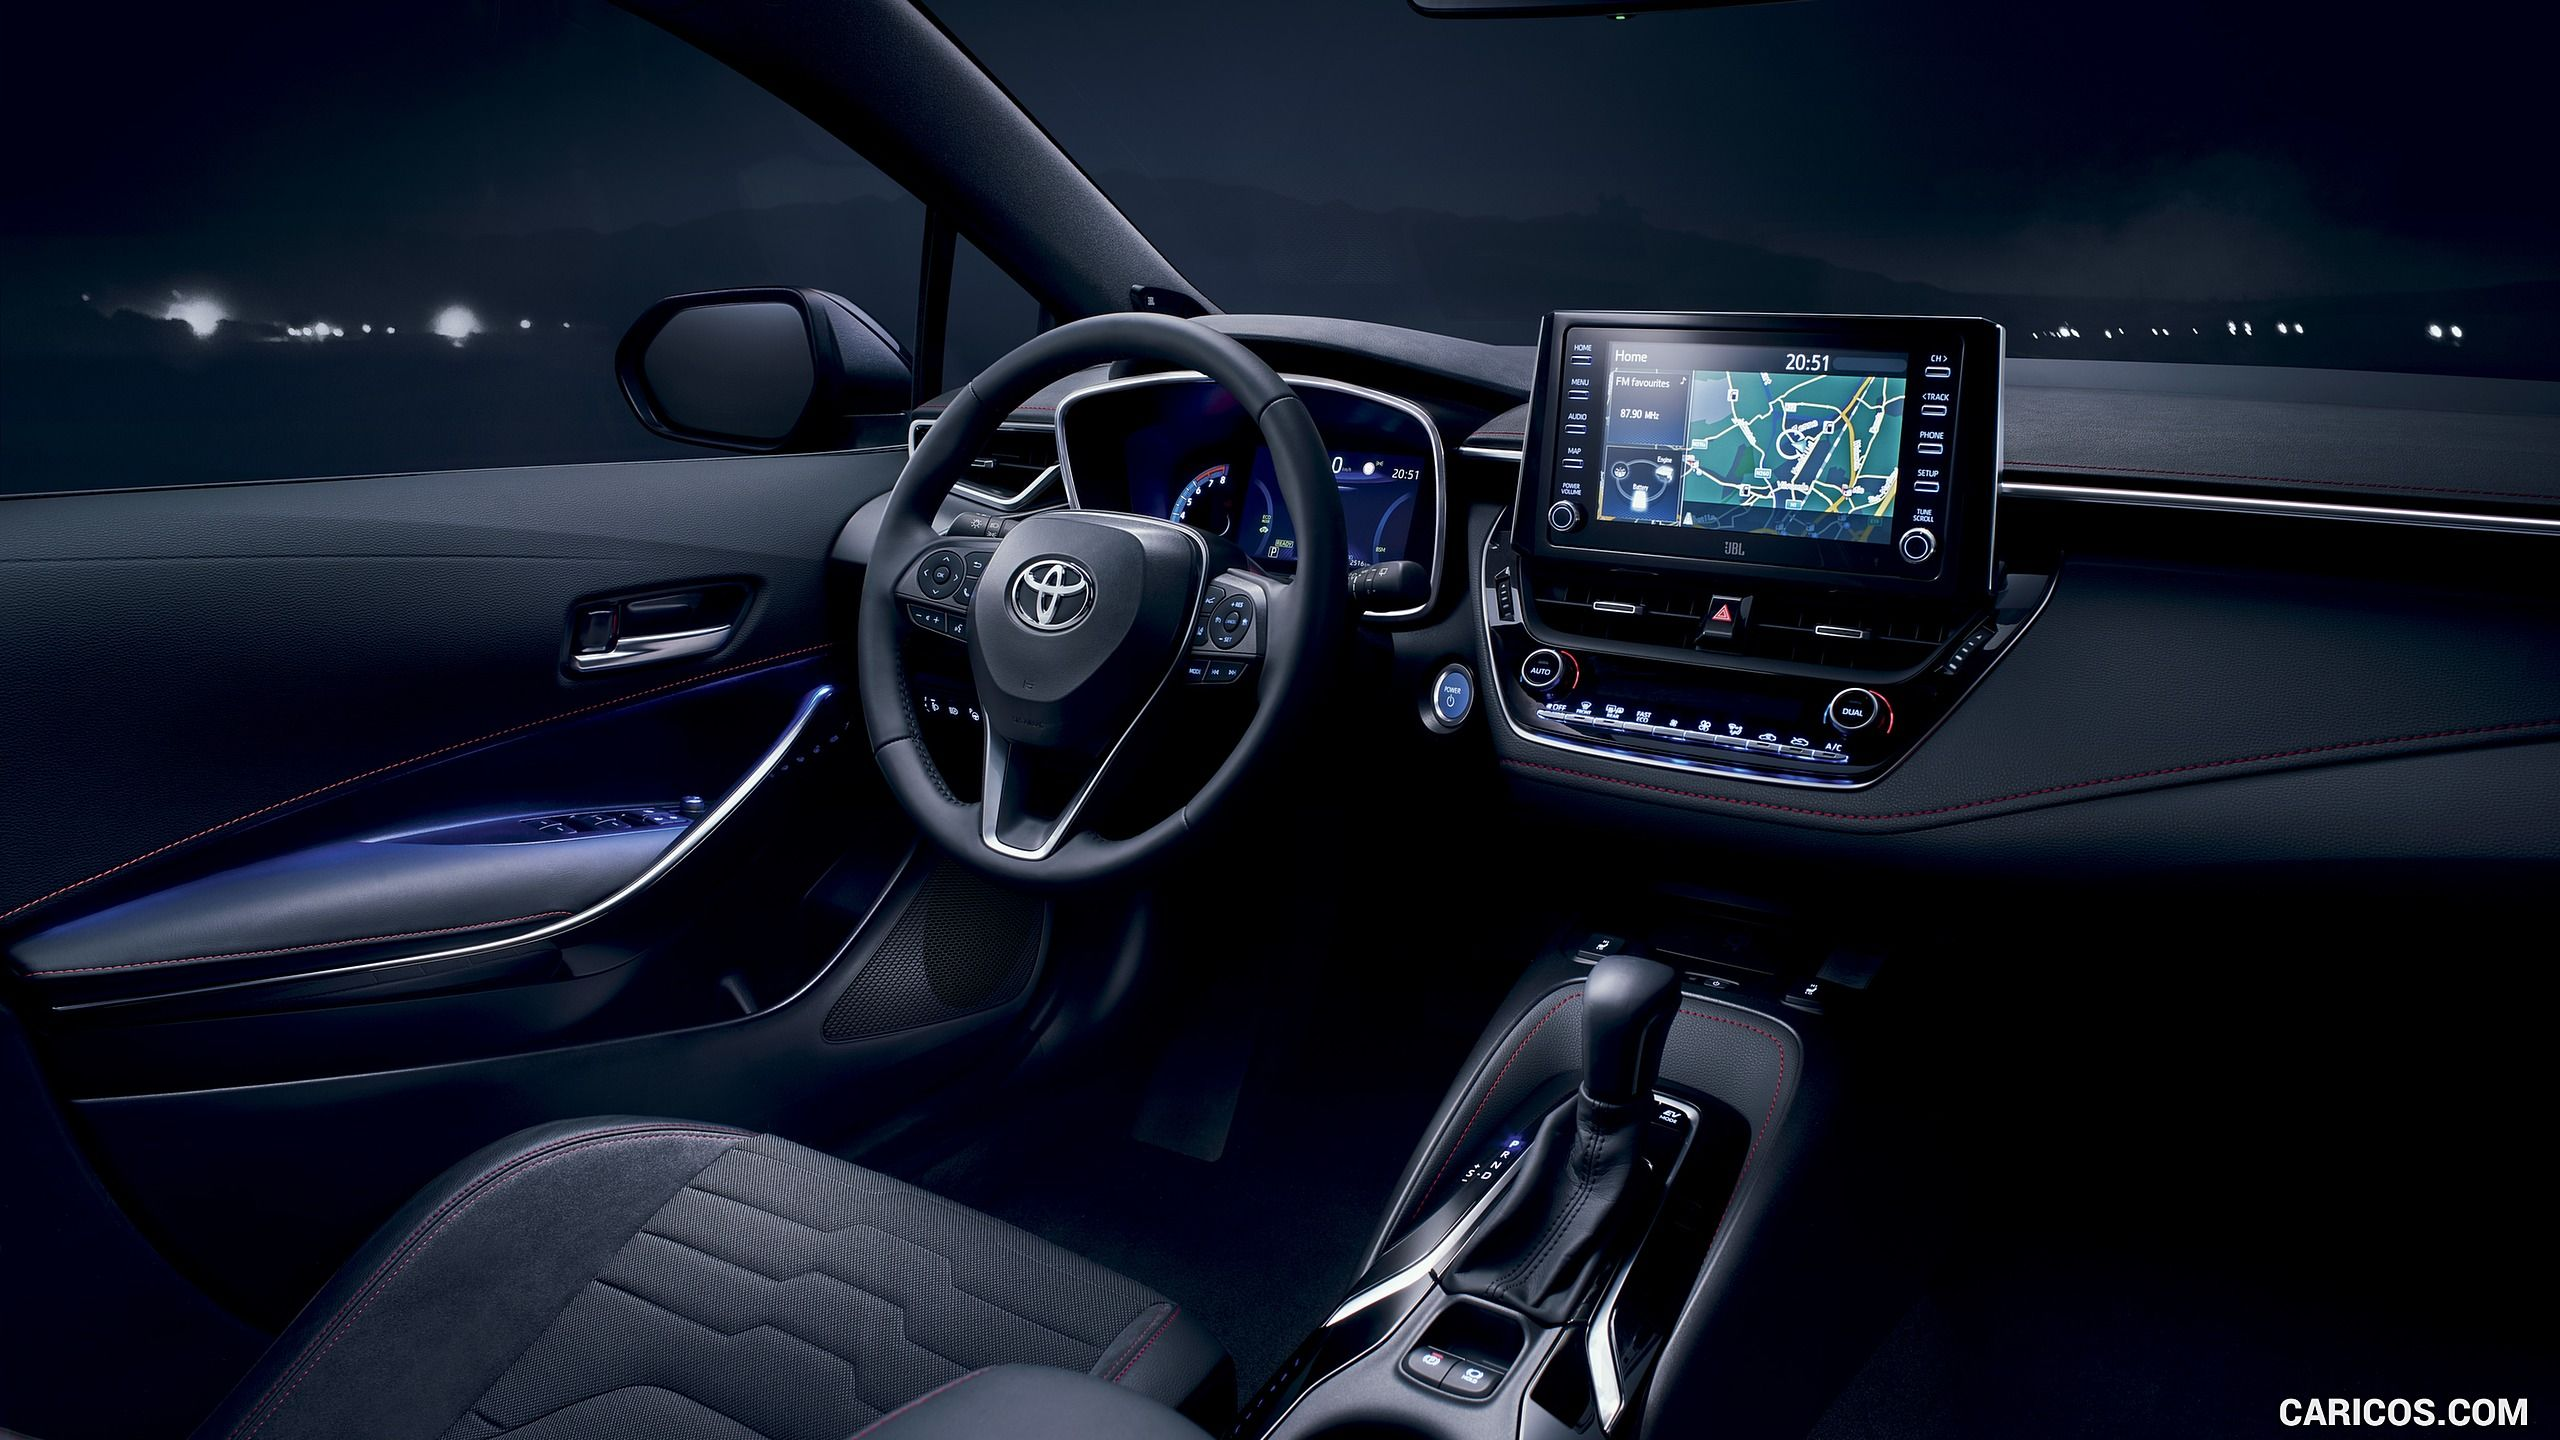 Pin By Mayue On Interior In 2020 Toyota Corolla Hatchback Corolla Hatchback Hatchback